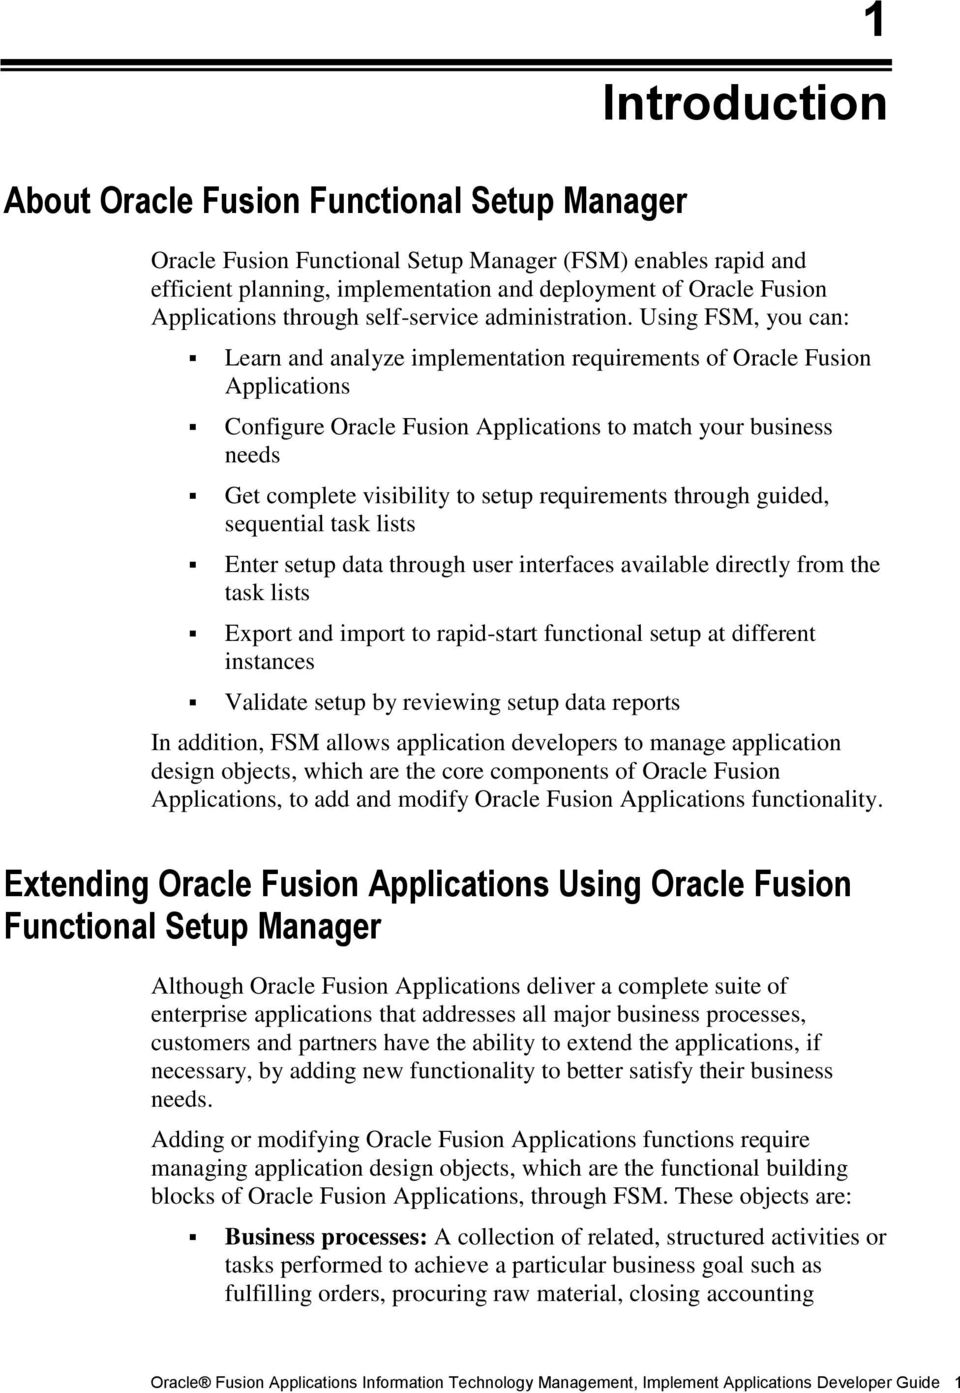 Using FSM, you can: Learn and analyze implementation requirements of Oracle Fusion Applications Configure Oracle Fusion Applications to match your business needs Get complete visibility to setup